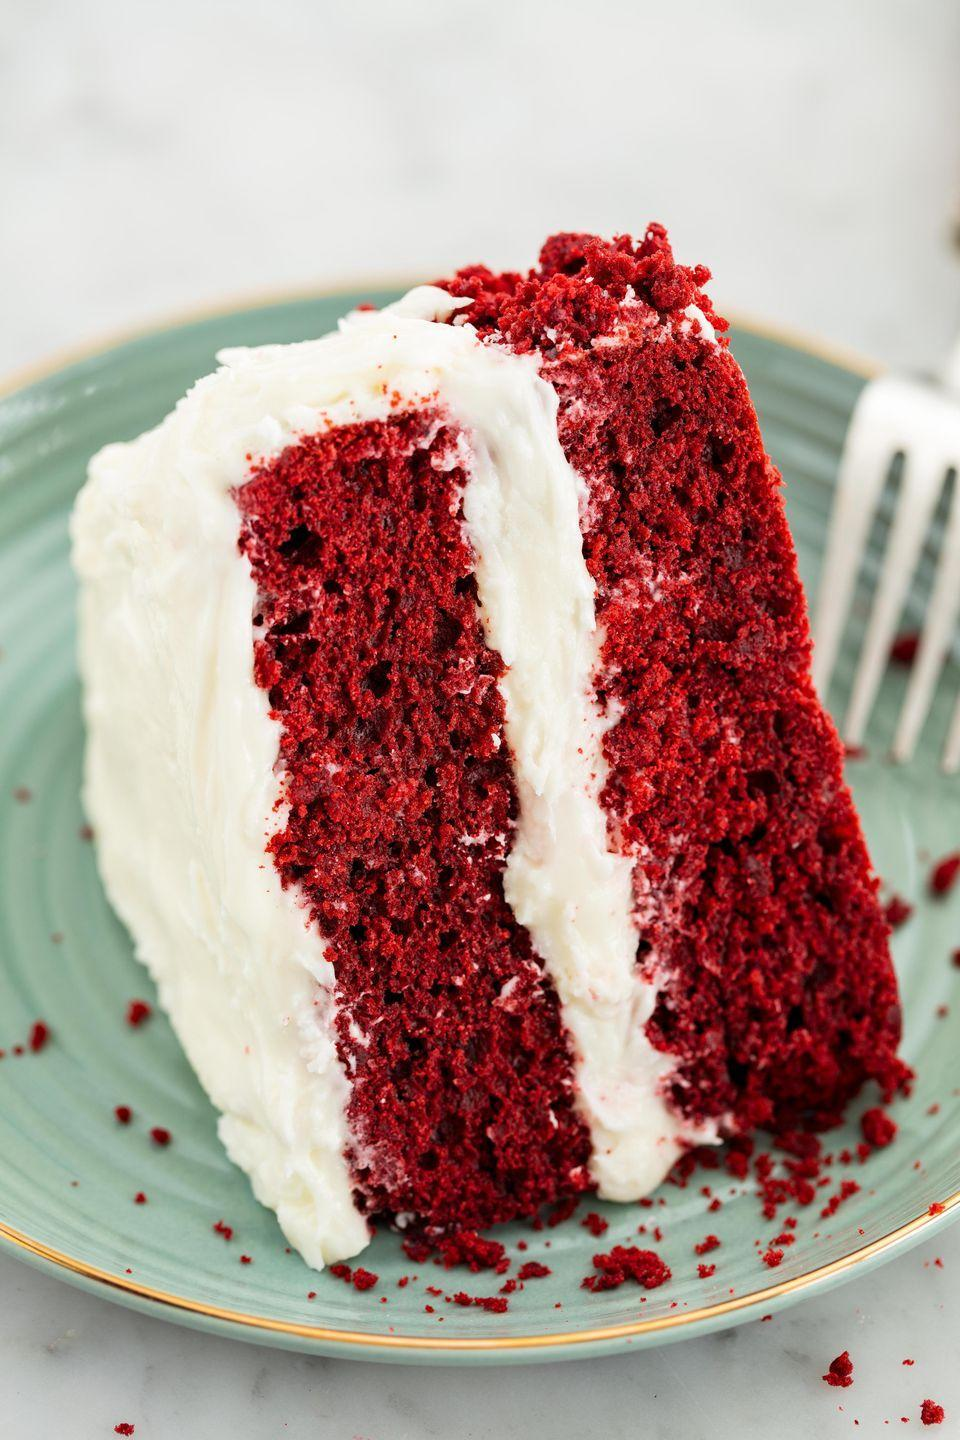 "<p>On theme AND insanely delicious.</p><p>Get the recipe from <a href=""https://www.delish.com/cooking/recipe-ideas/recipes/a58093/best-red-velvet-cake-recipe/"" rel=""nofollow noopener"" target=""_blank"" data-ylk=""slk:Delish"" class=""link rapid-noclick-resp"">Delish</a>. </p>"